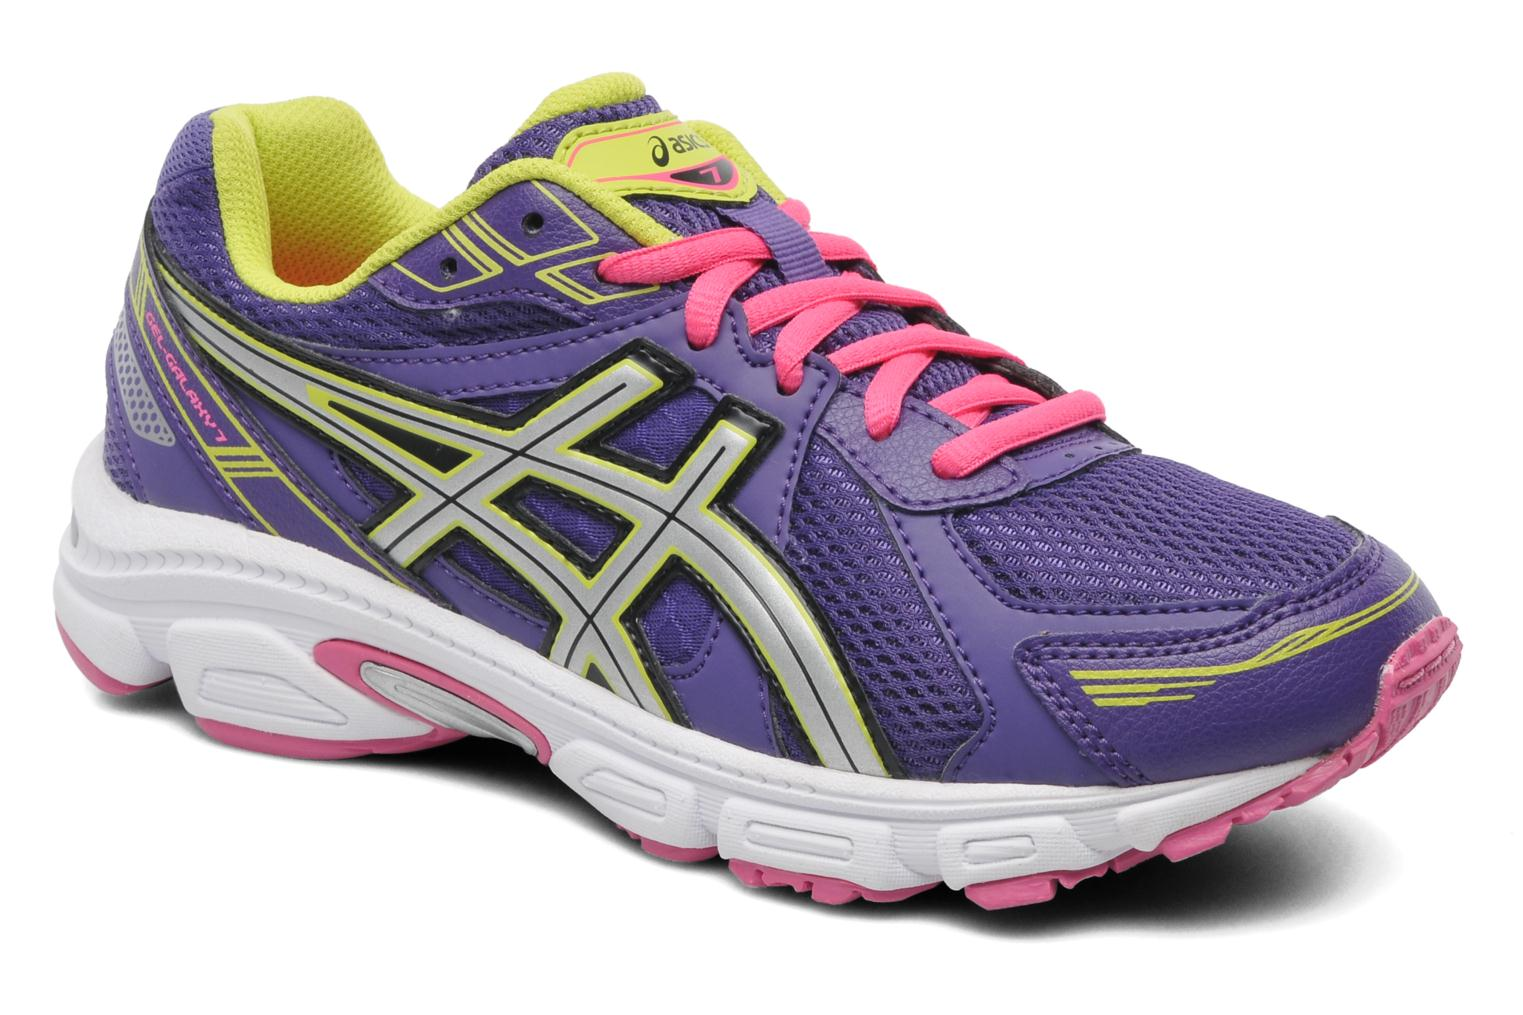 asics galaxy 7 mujer opiniones